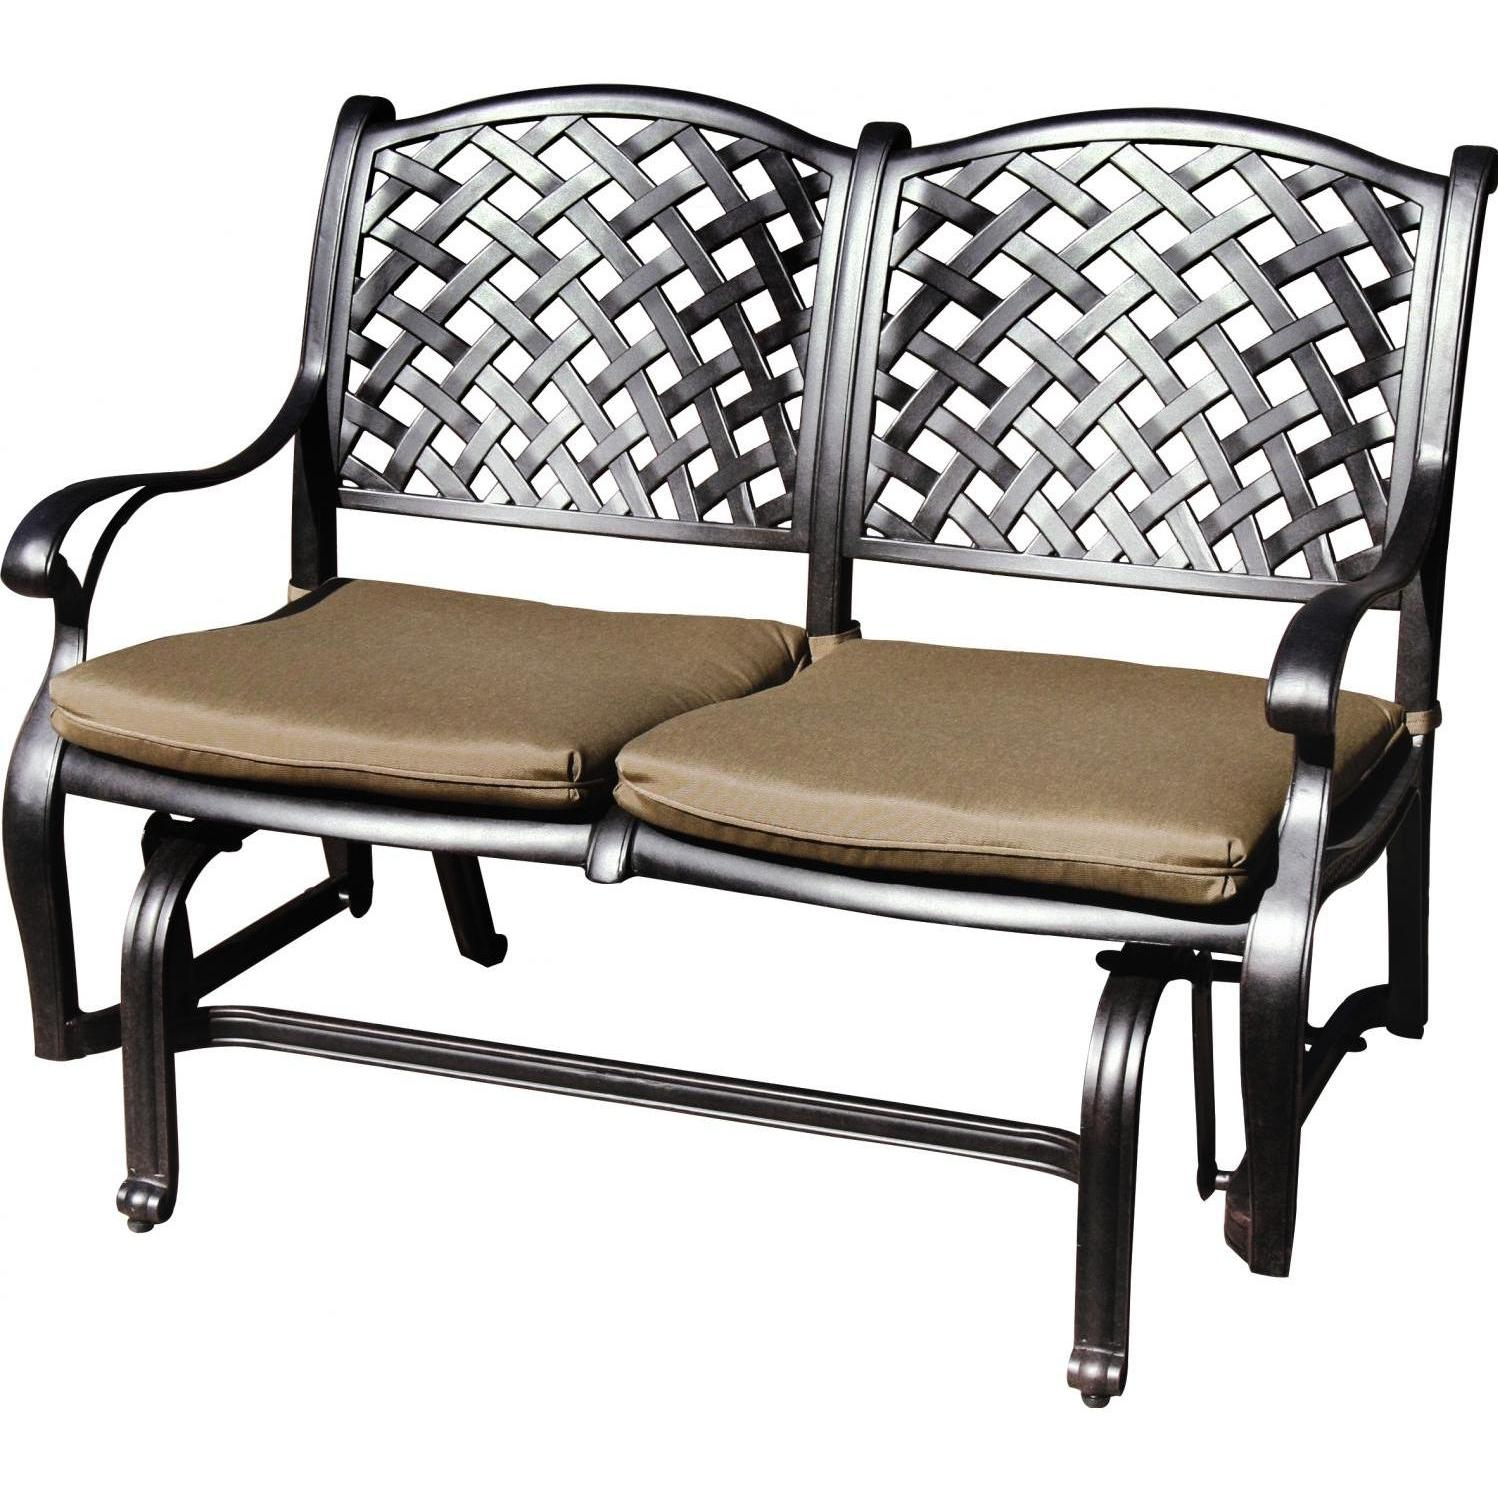 patio glider darlee nassau cast aluminum patio bench glider IQMXYKZ